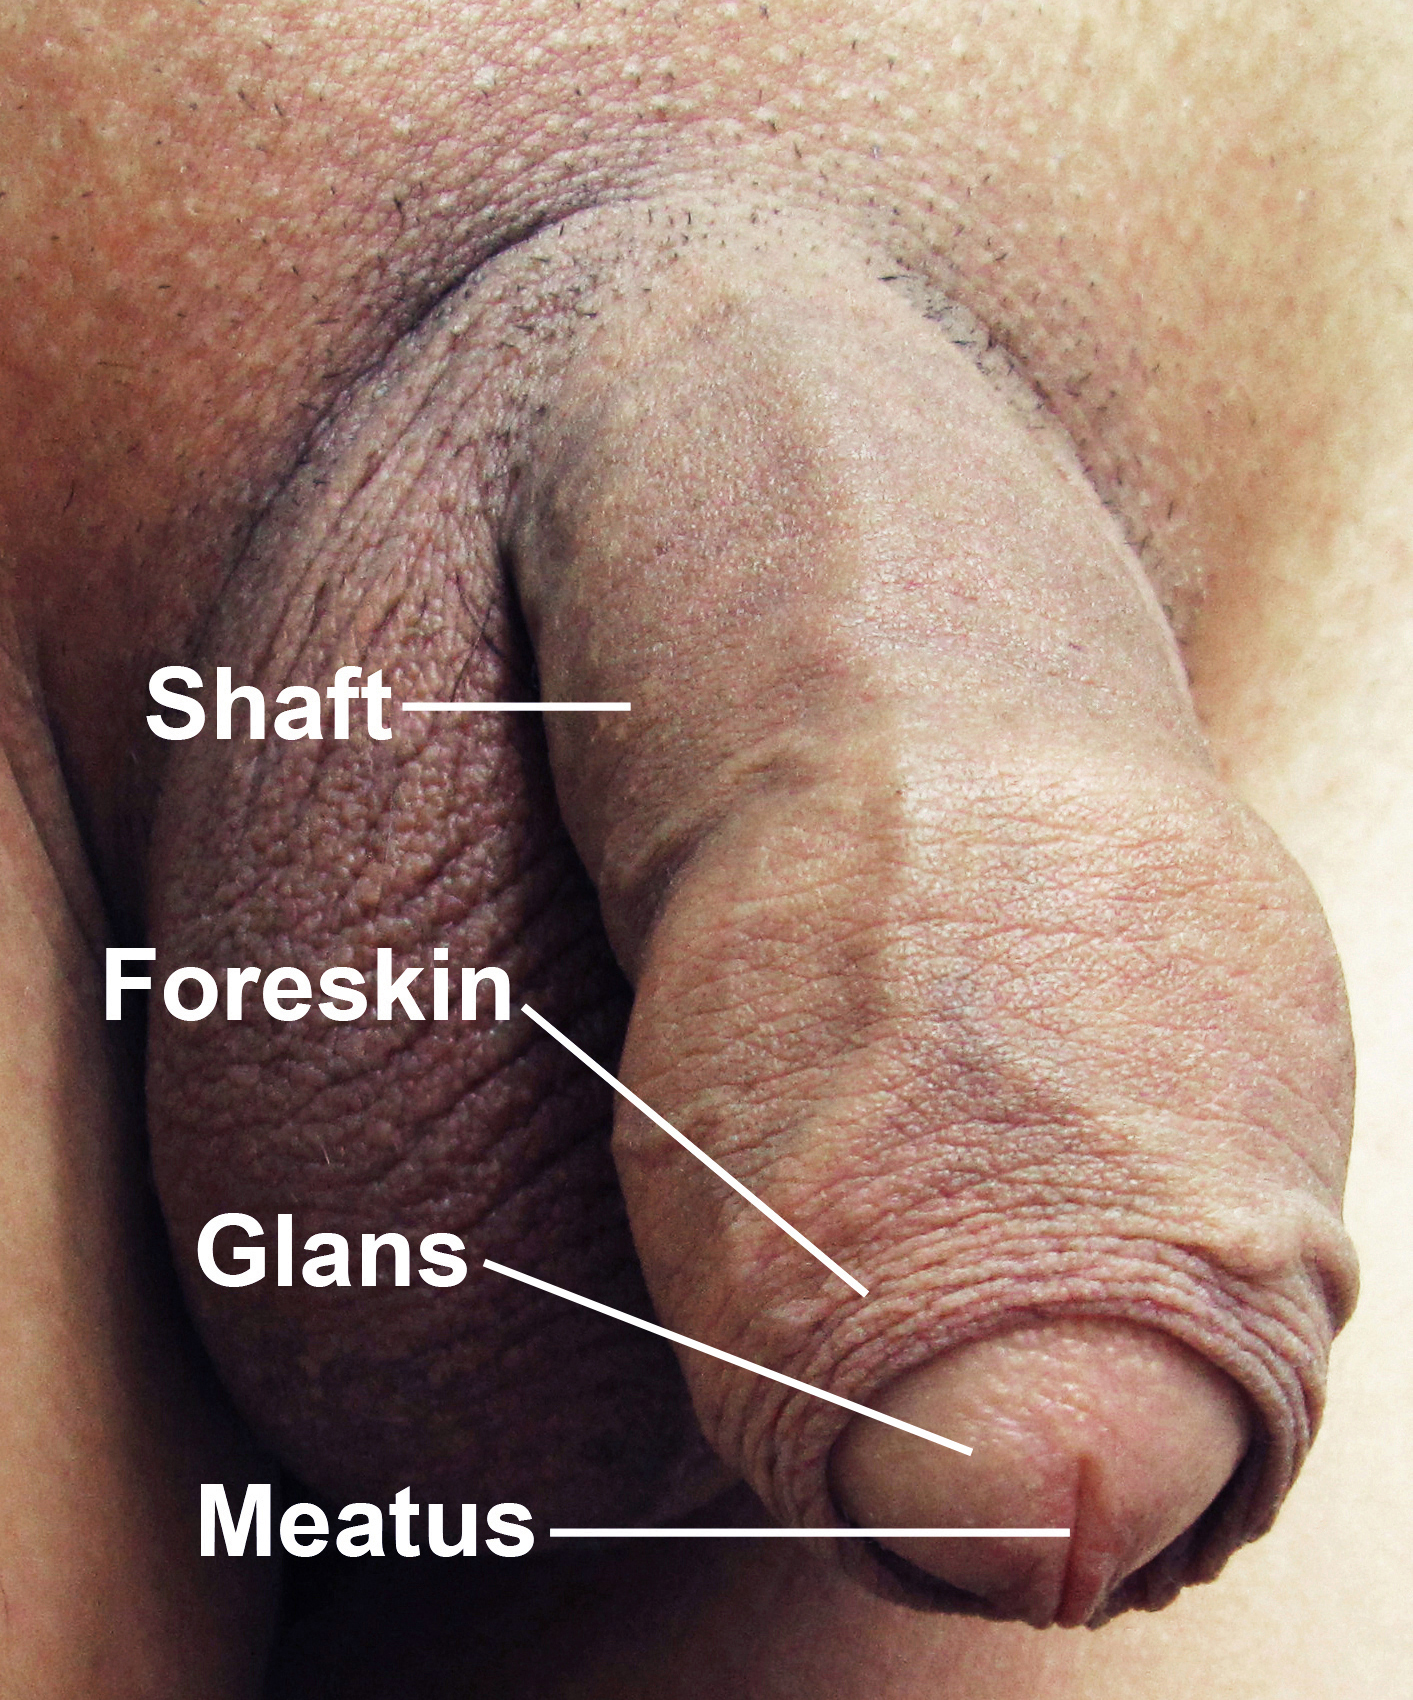 Soft penis for help and short